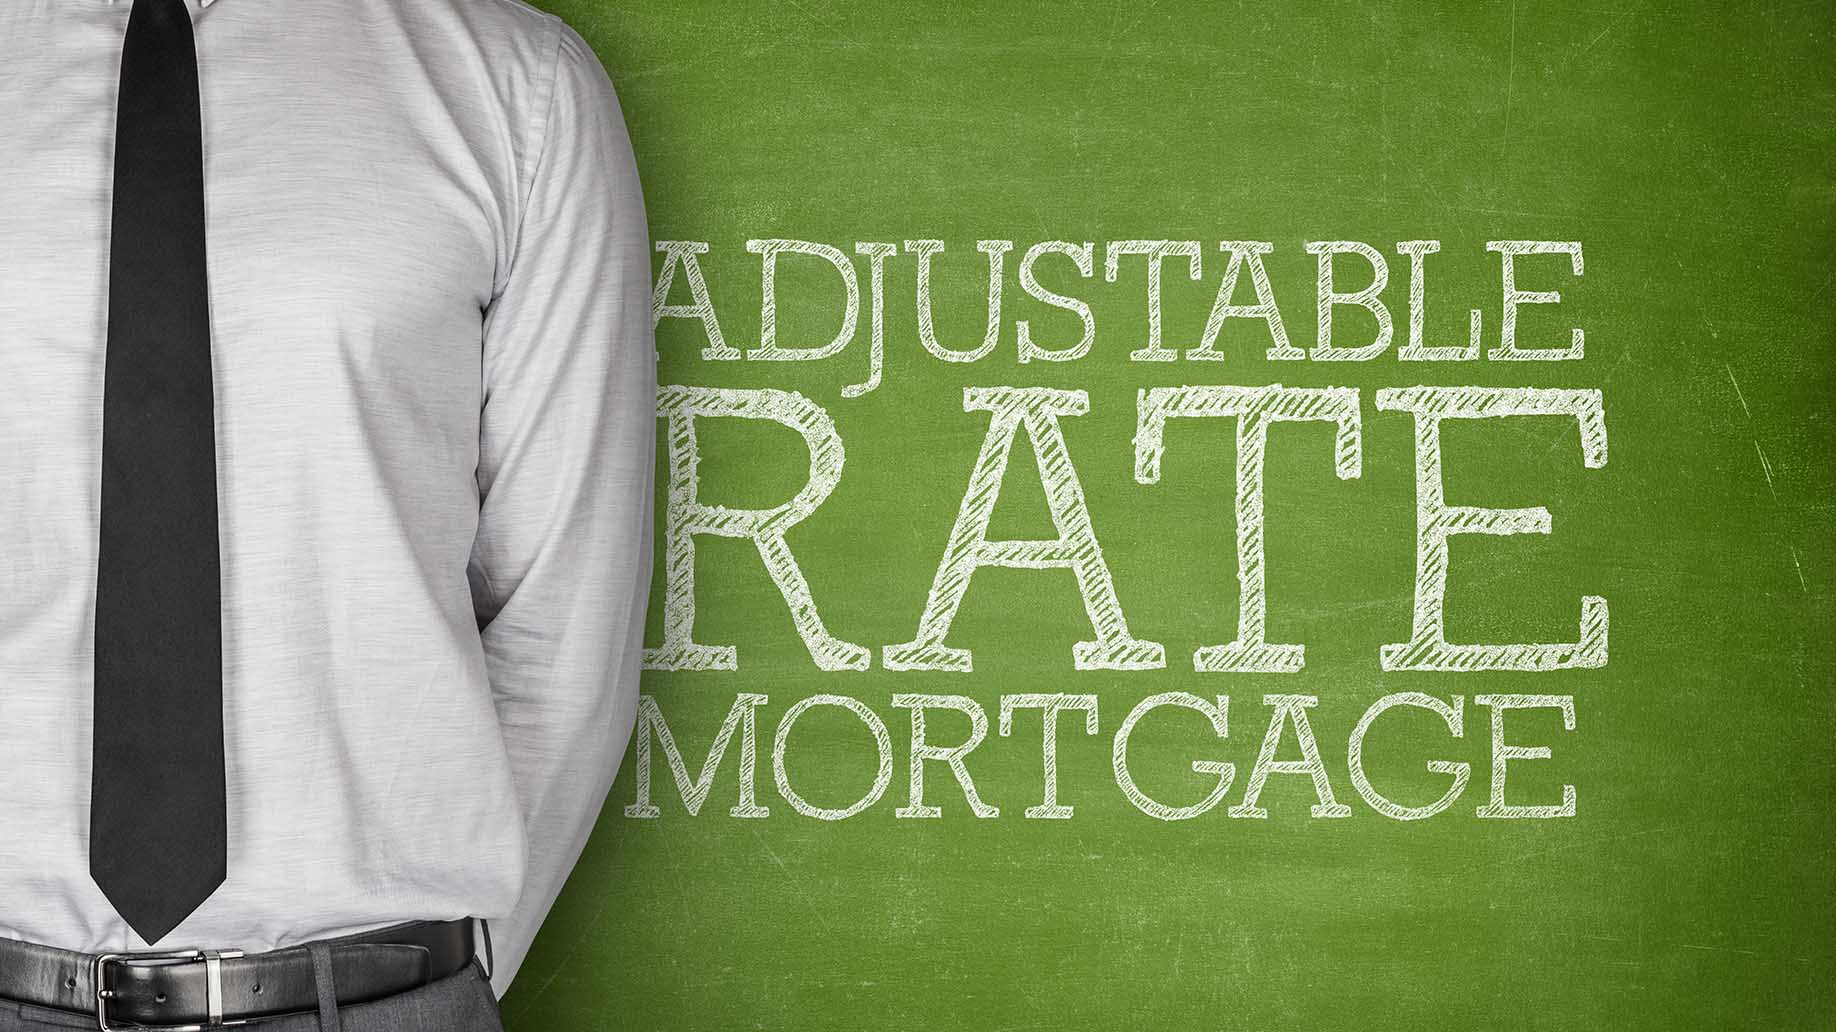 what is an adjustable rate mortgage (arm) - definition, pros & cons